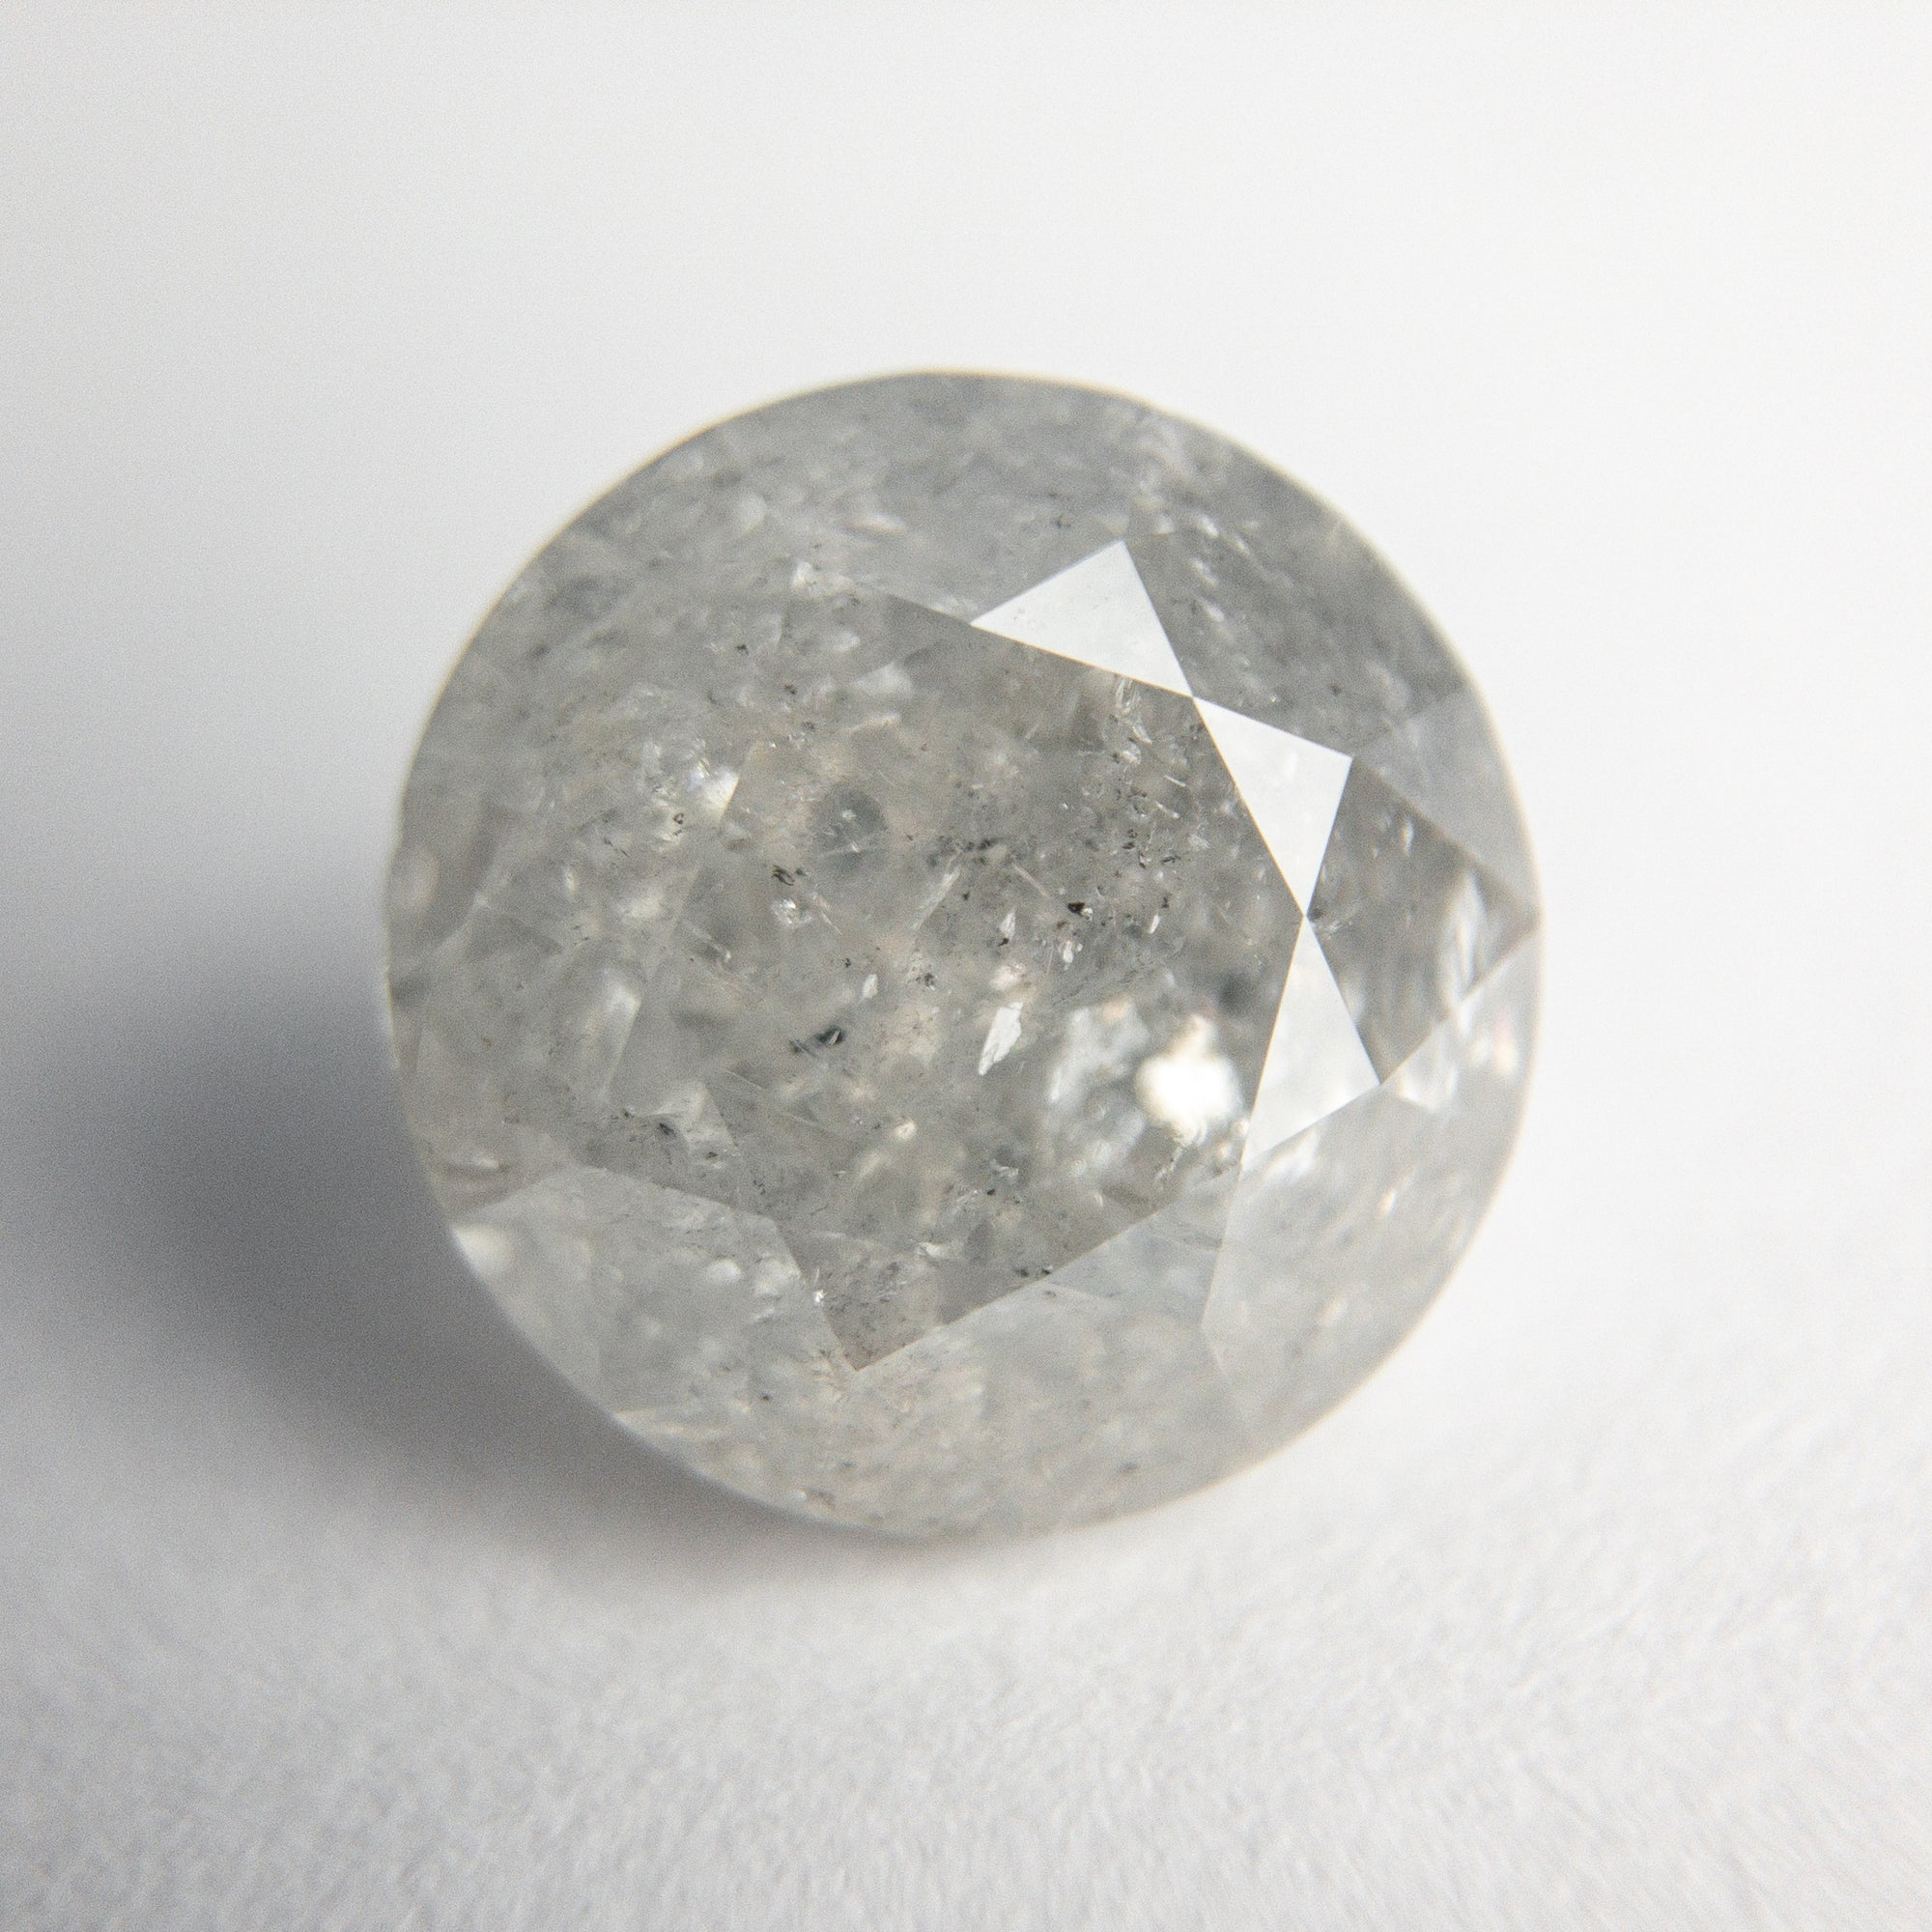 4.38ct 10.13x10.06x6.51mm Round Brilliant 18420-01